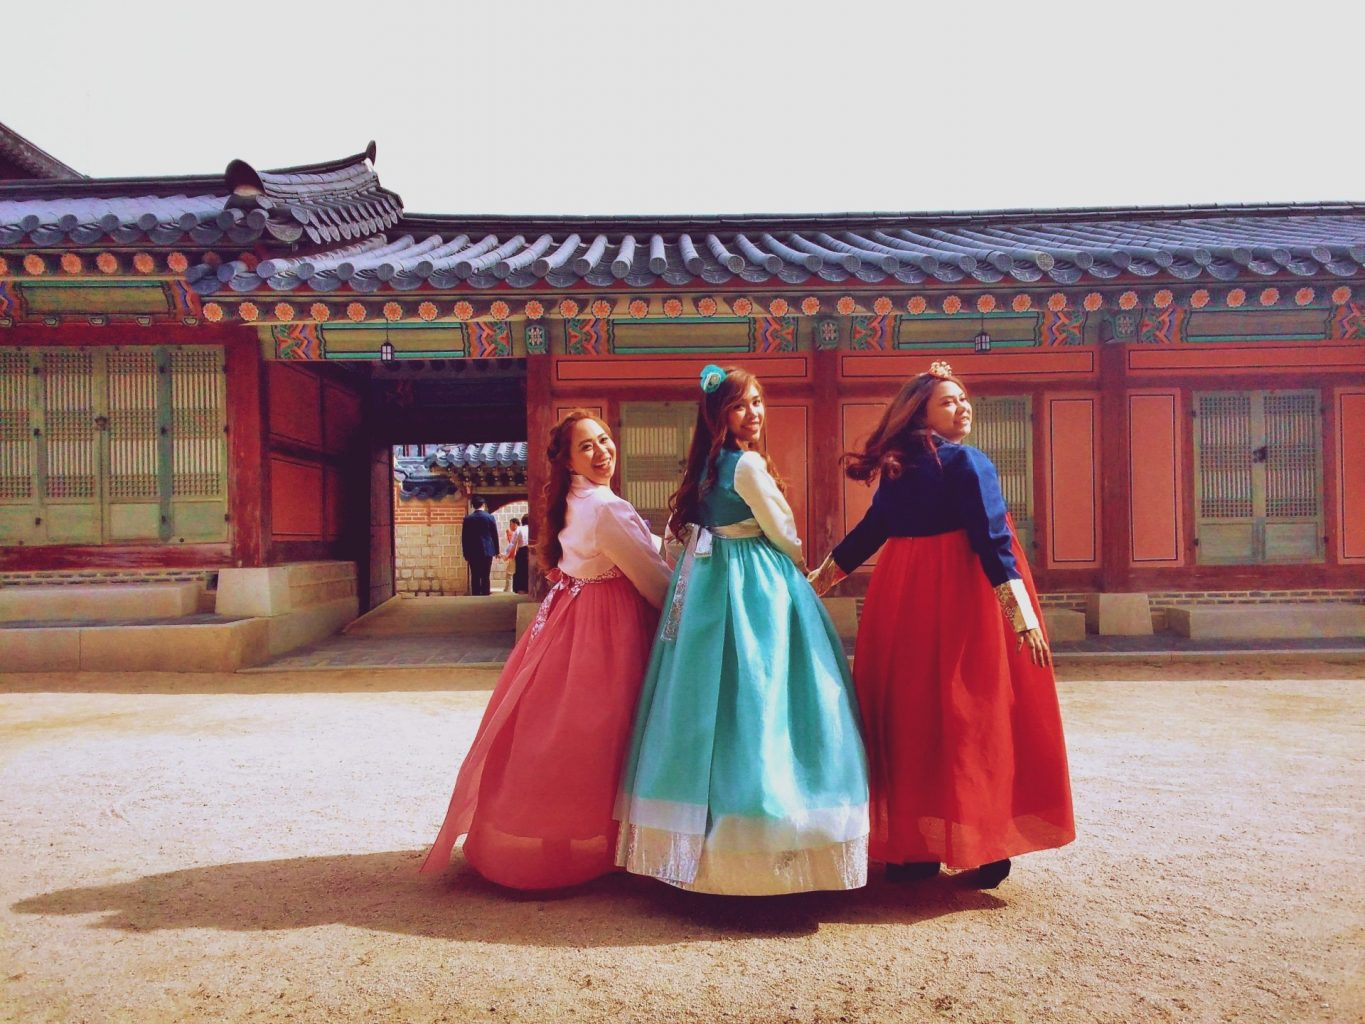 Day Tour in Seoul for Kdrama Fans – Sample Itinerary and Guides